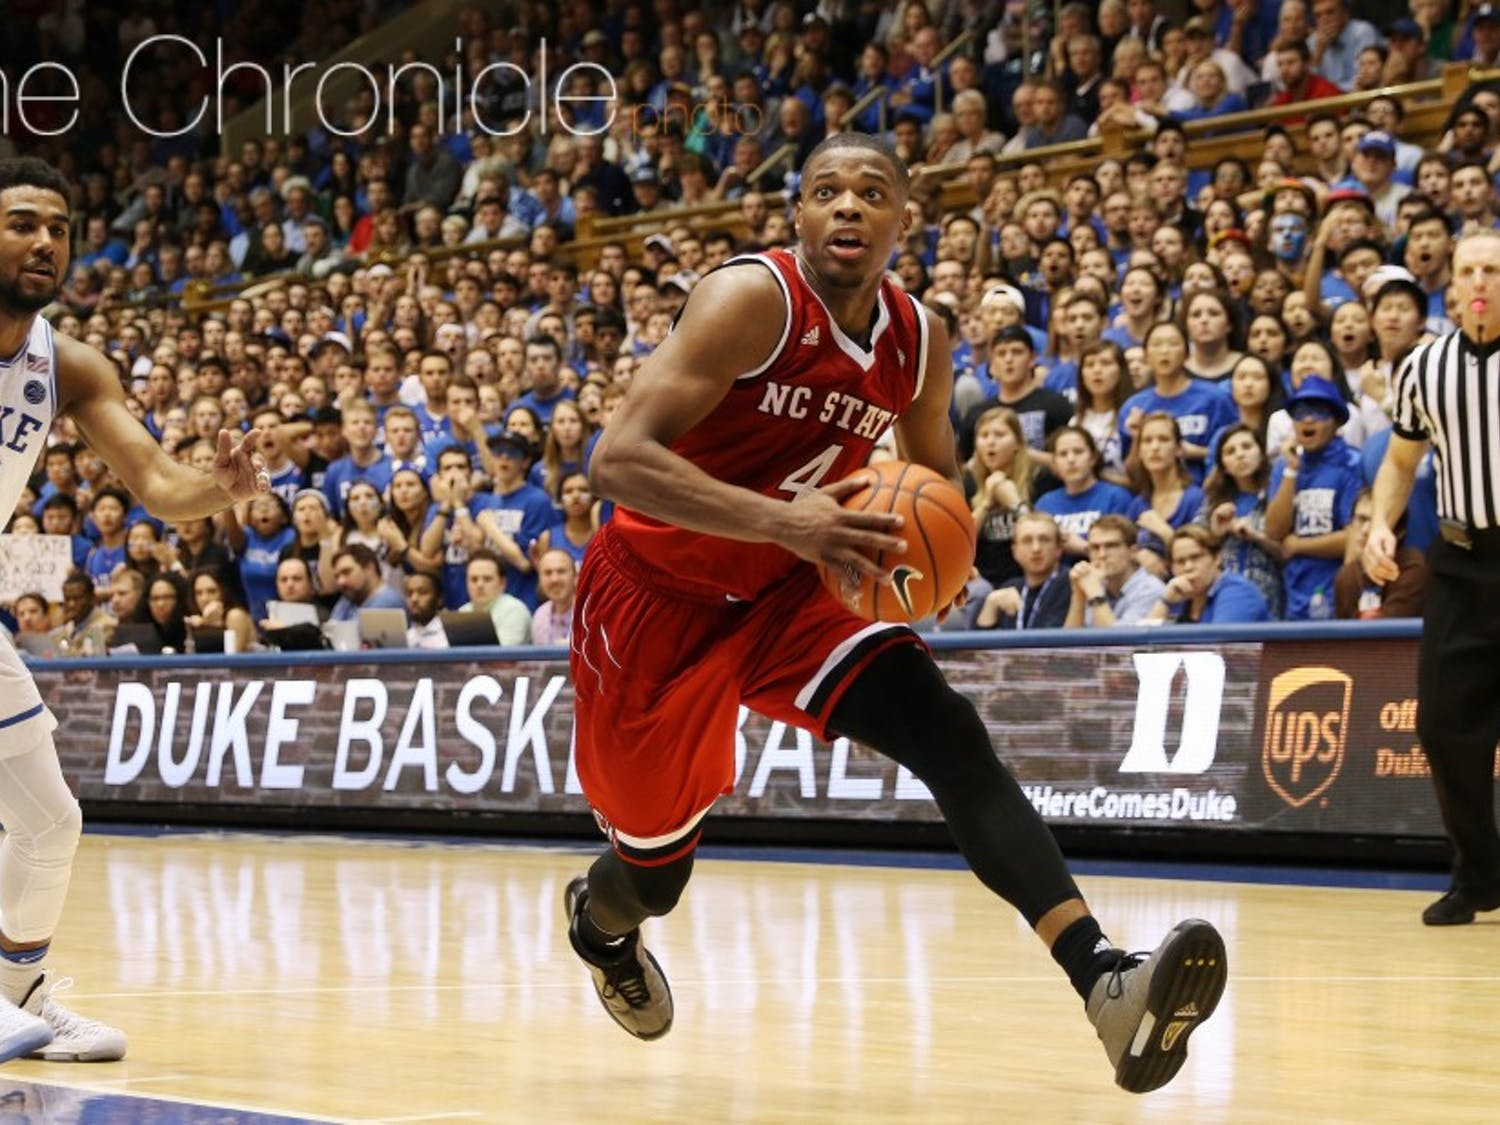 Freshman Dennis Smith Jr. earned ACC Freshman of the Year accolades, but individual success has not translated to team success.